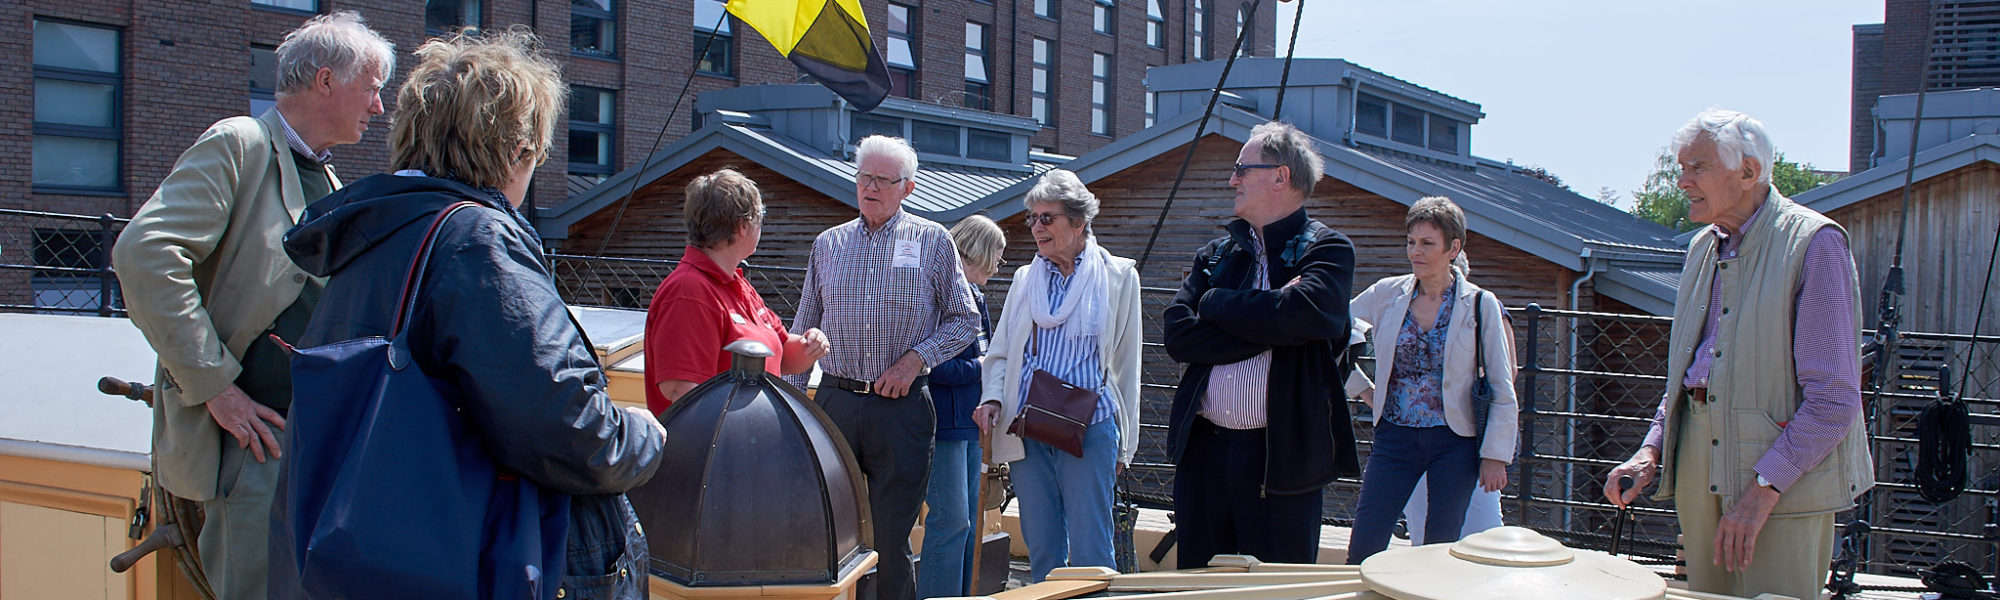 Visit to the SS Great Britain